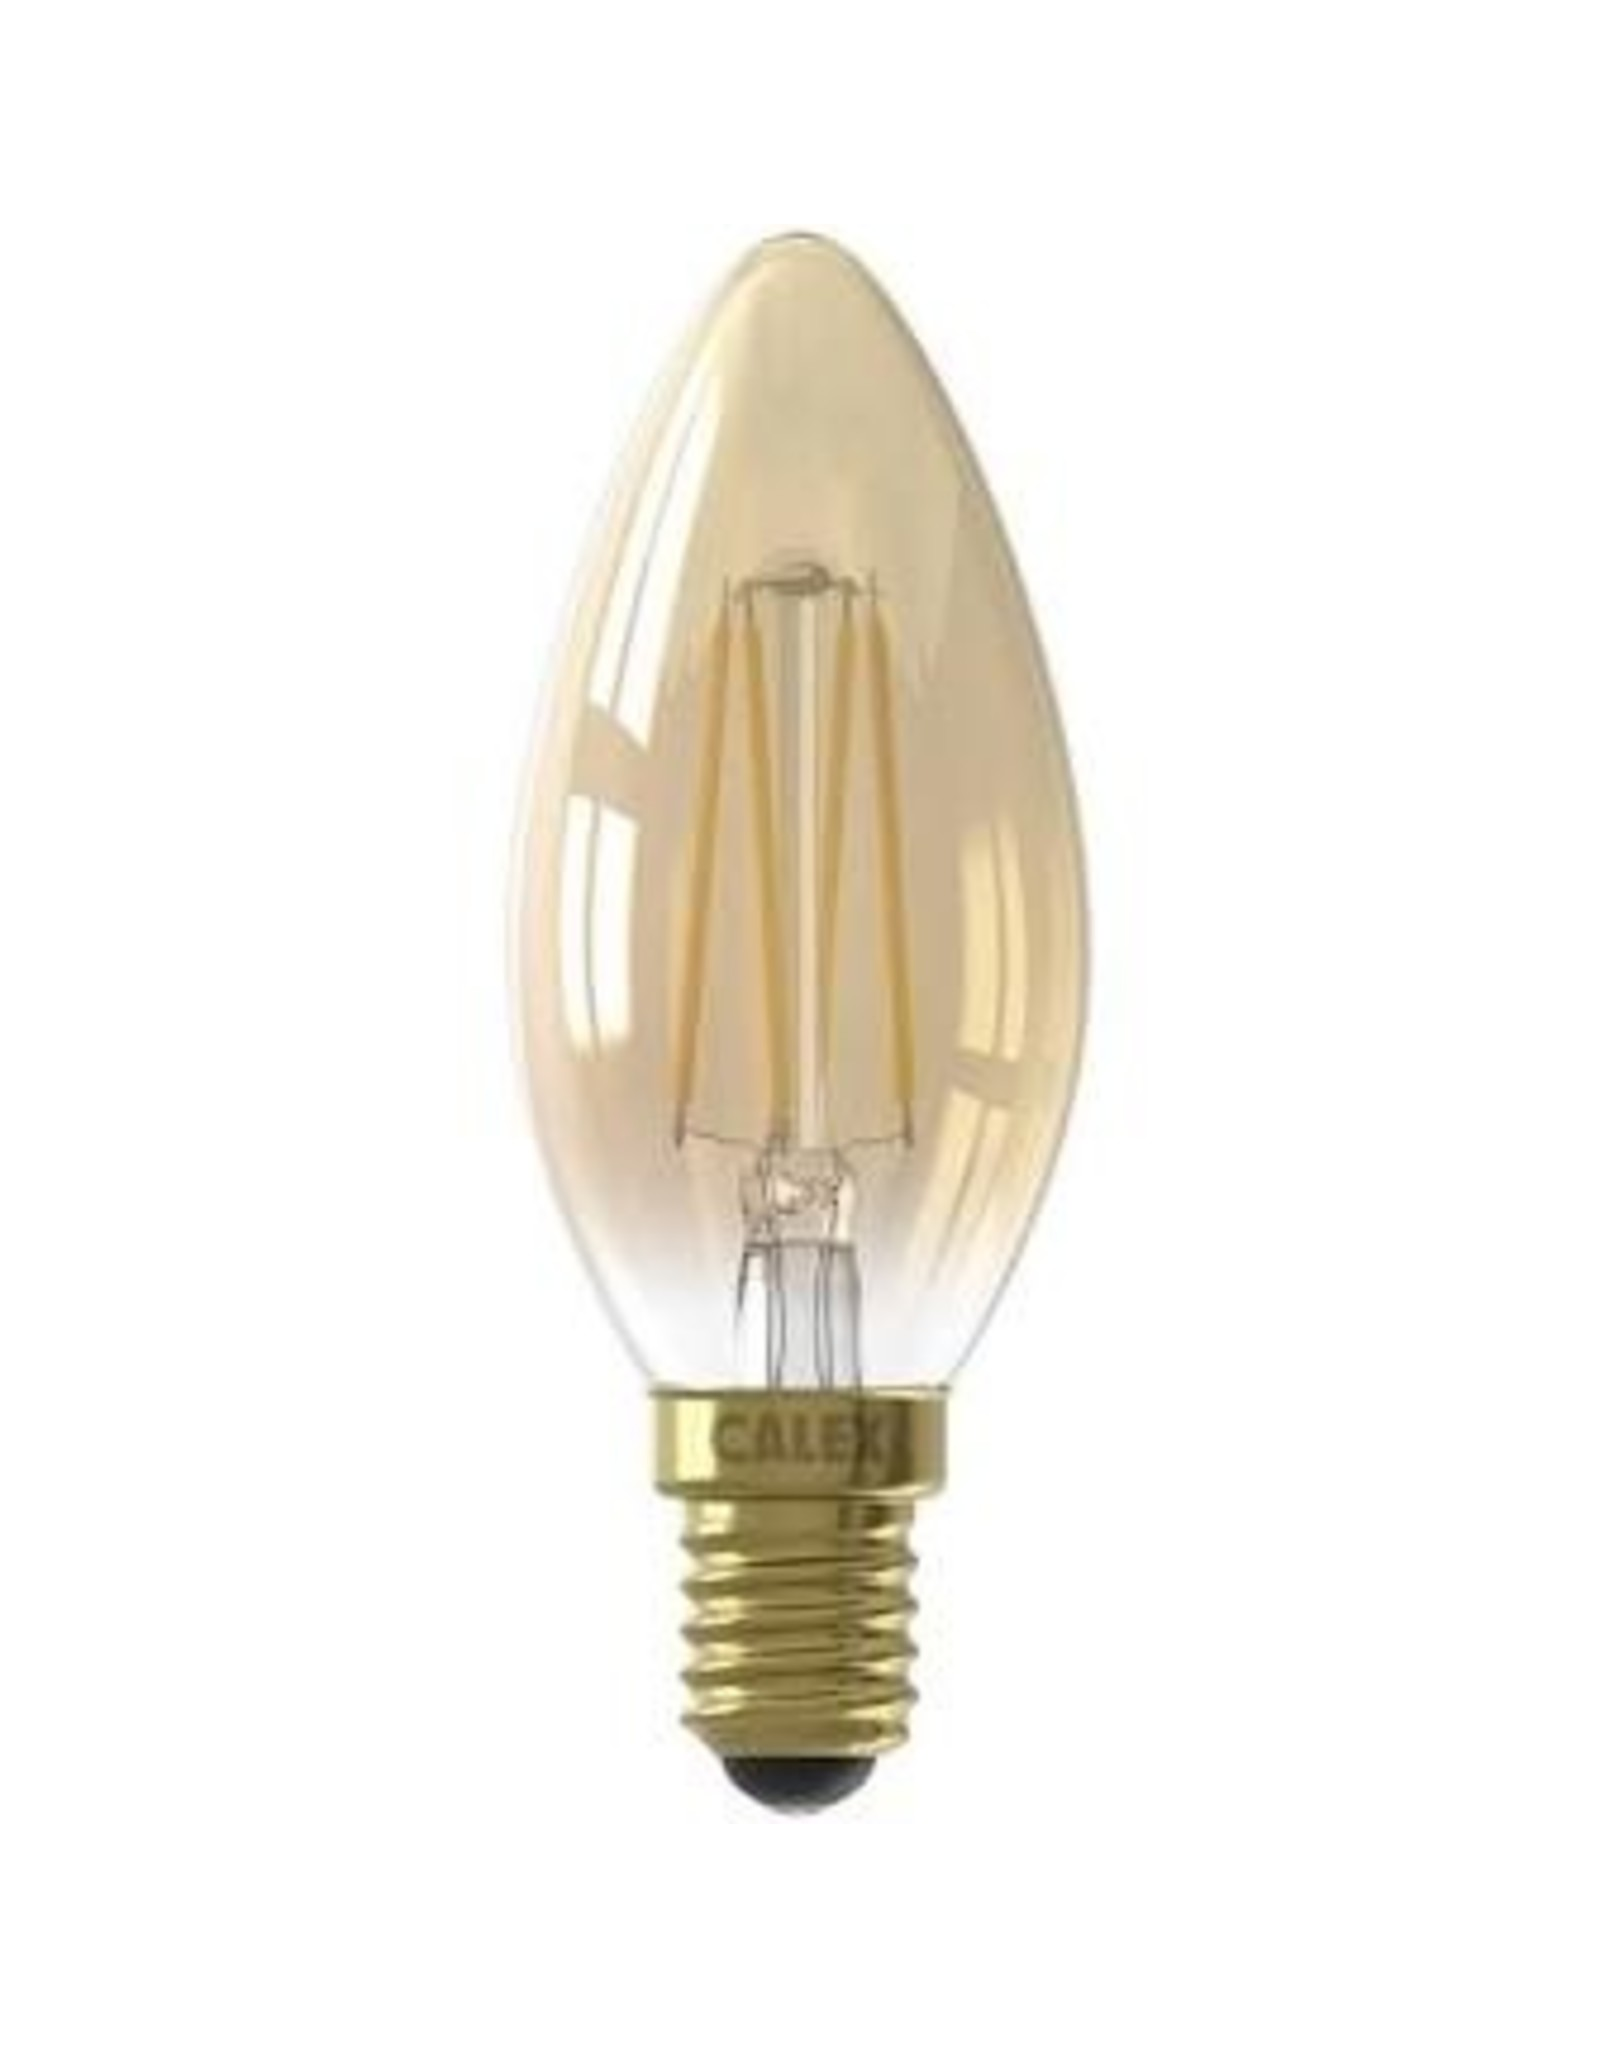 Calex LED Full Glass Filament Candle-lamp 220-240V 3,5W 200lm E14 B35, Gold 2100K CRI80 Dimmable, energy label A+